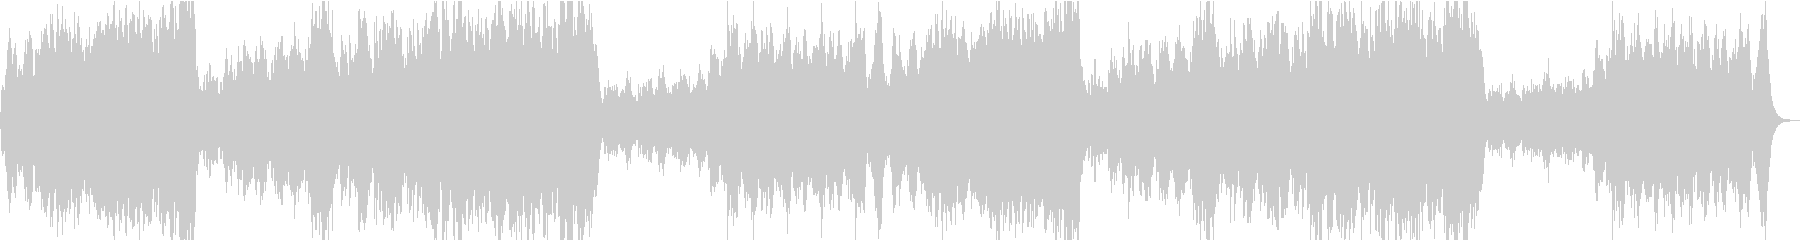 Fanfare + Hollywood-style BGM's unreproduced waveform